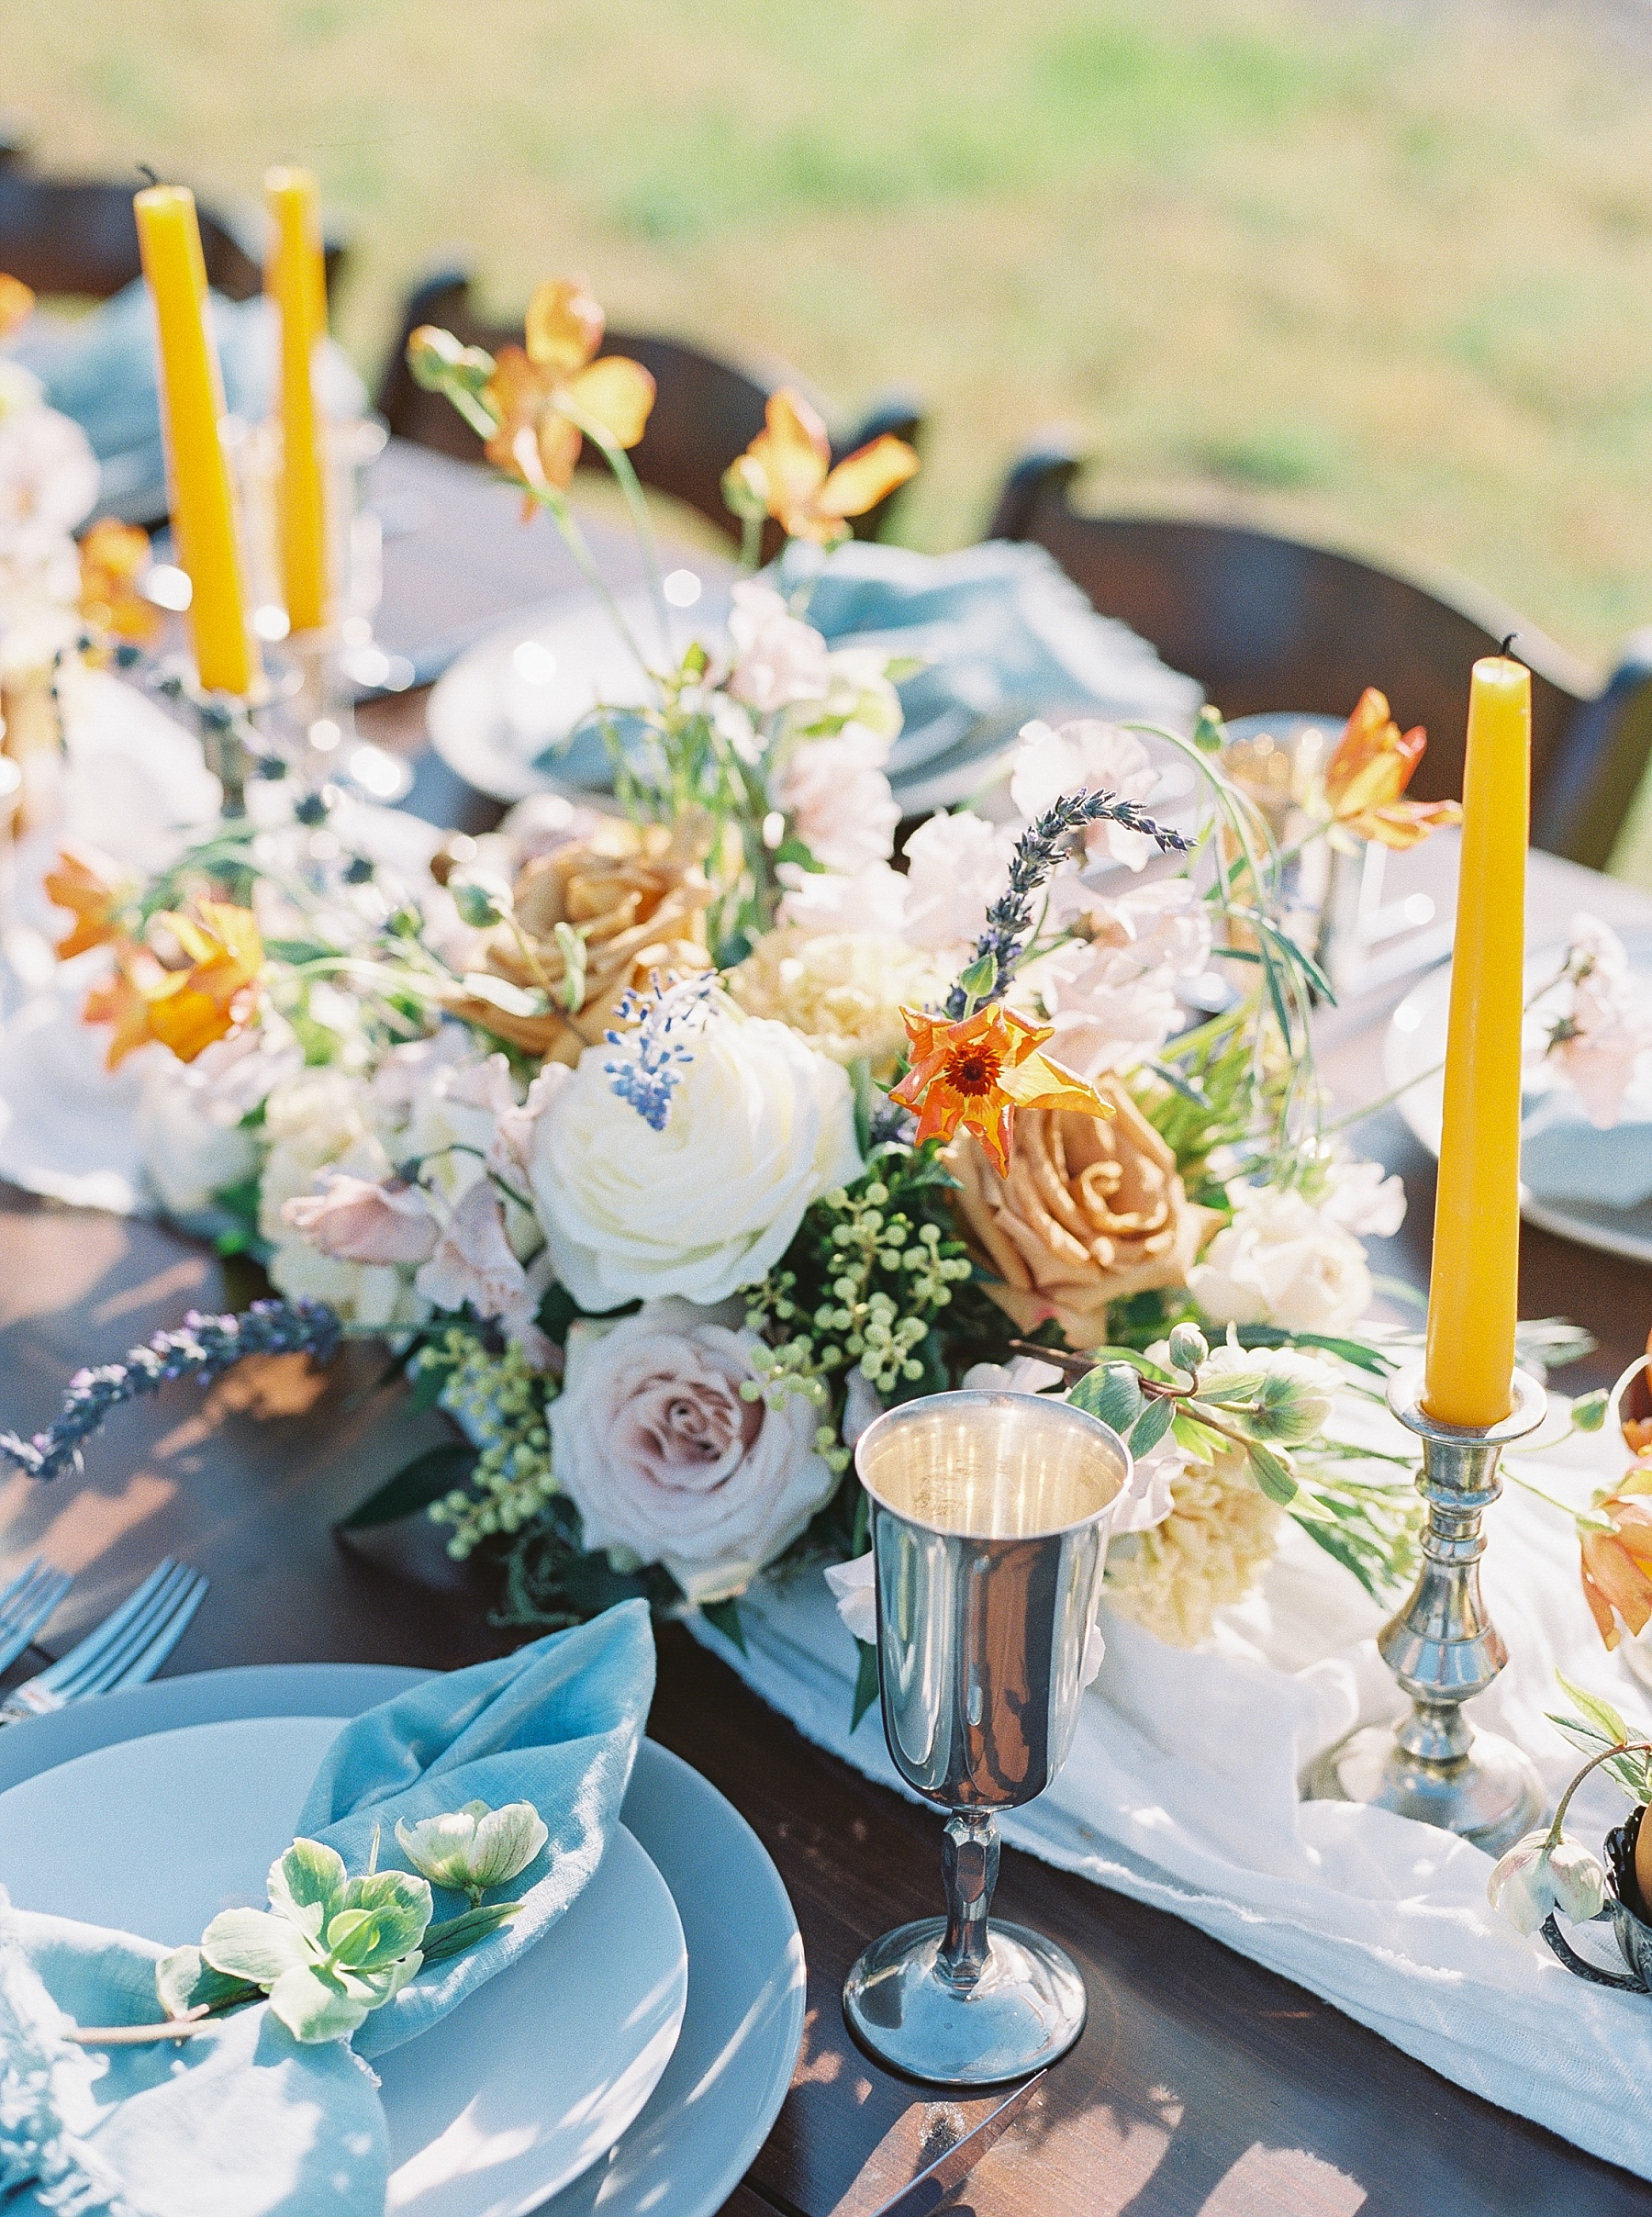 Intimate Spanish and French Inspired Destination Wedding with Lakeside Dinner Party at Dusk at Wildcliff by Kelsi Kliethermes Photography Best Missouri and Maui Wedding Photographer_0068.jpg